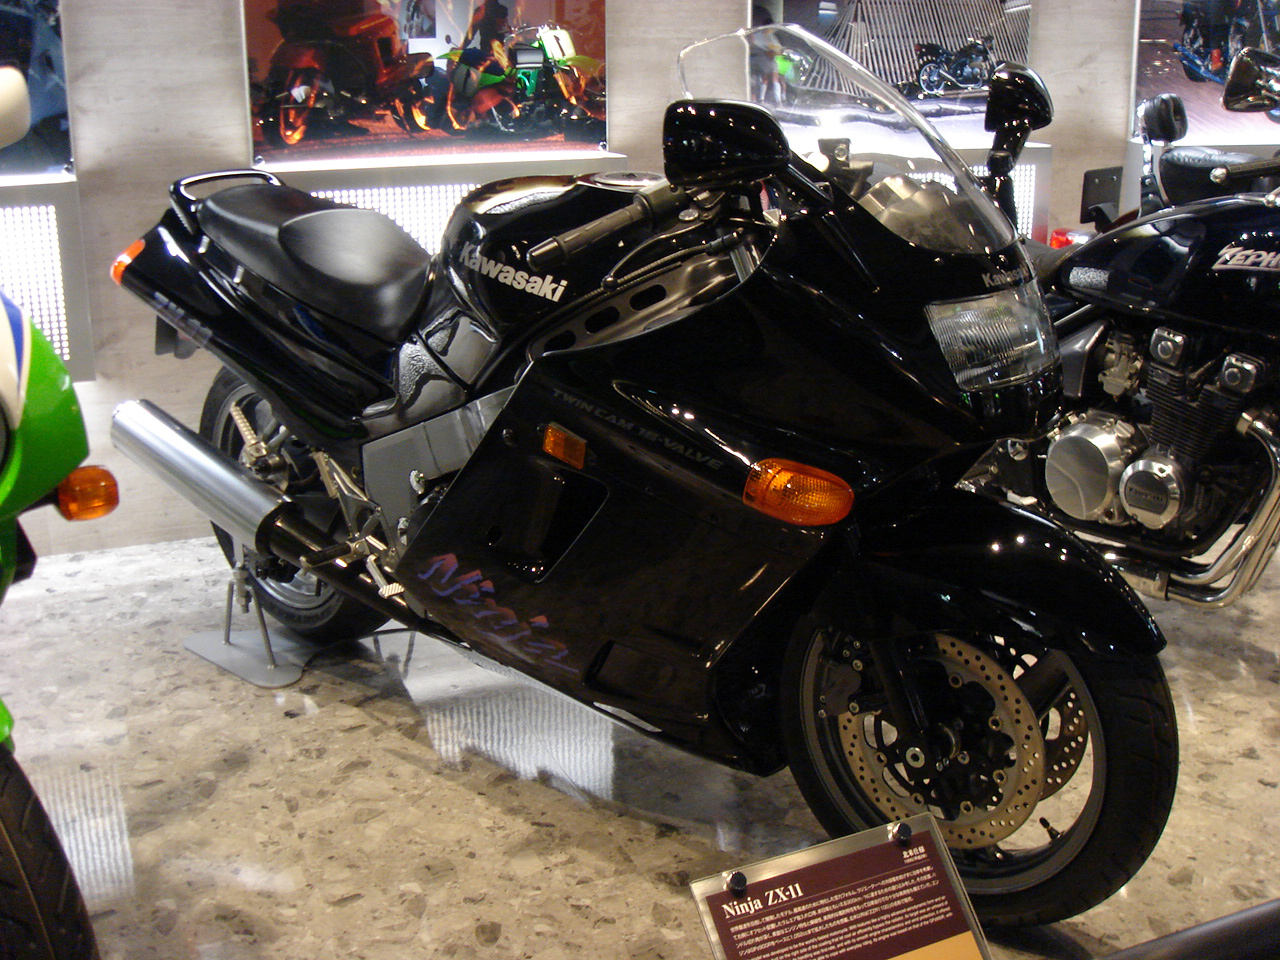 http://upload.wikimedia.org/wikipedia/commons/f/fb/Kawasaki_Ninja_ZX-11_1990.jpg